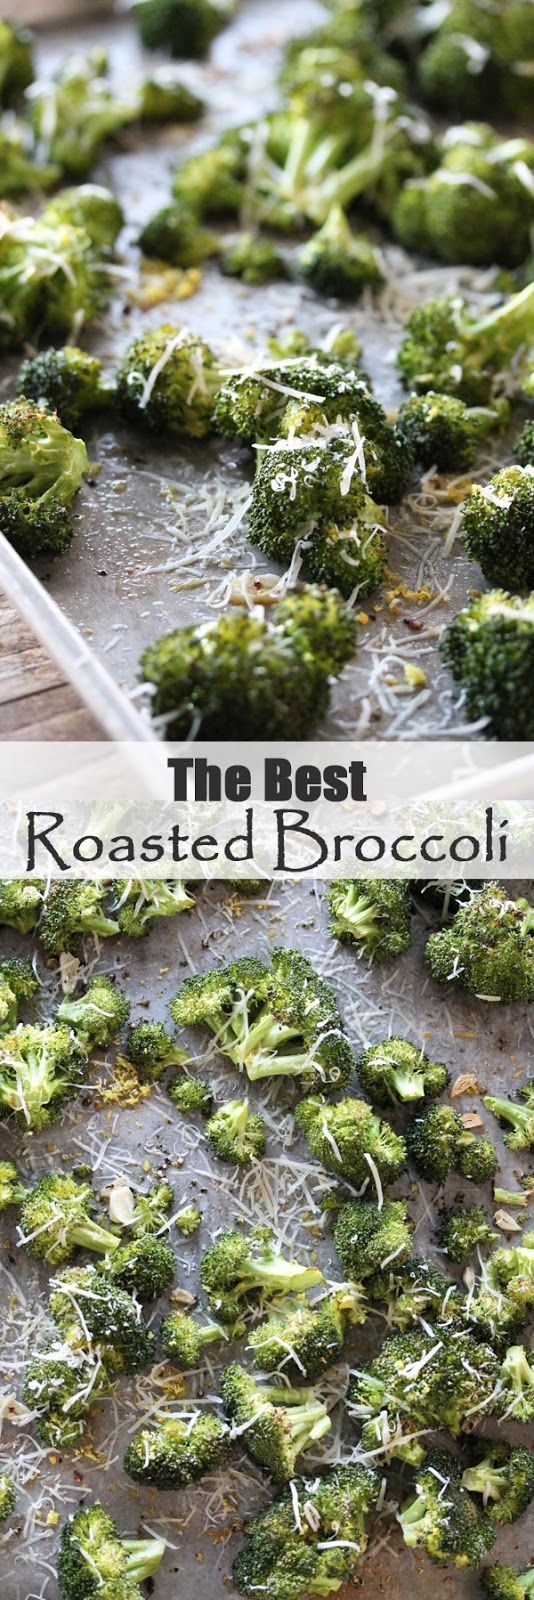 The Best Roasted Broccoli with Garlic and Parmesan